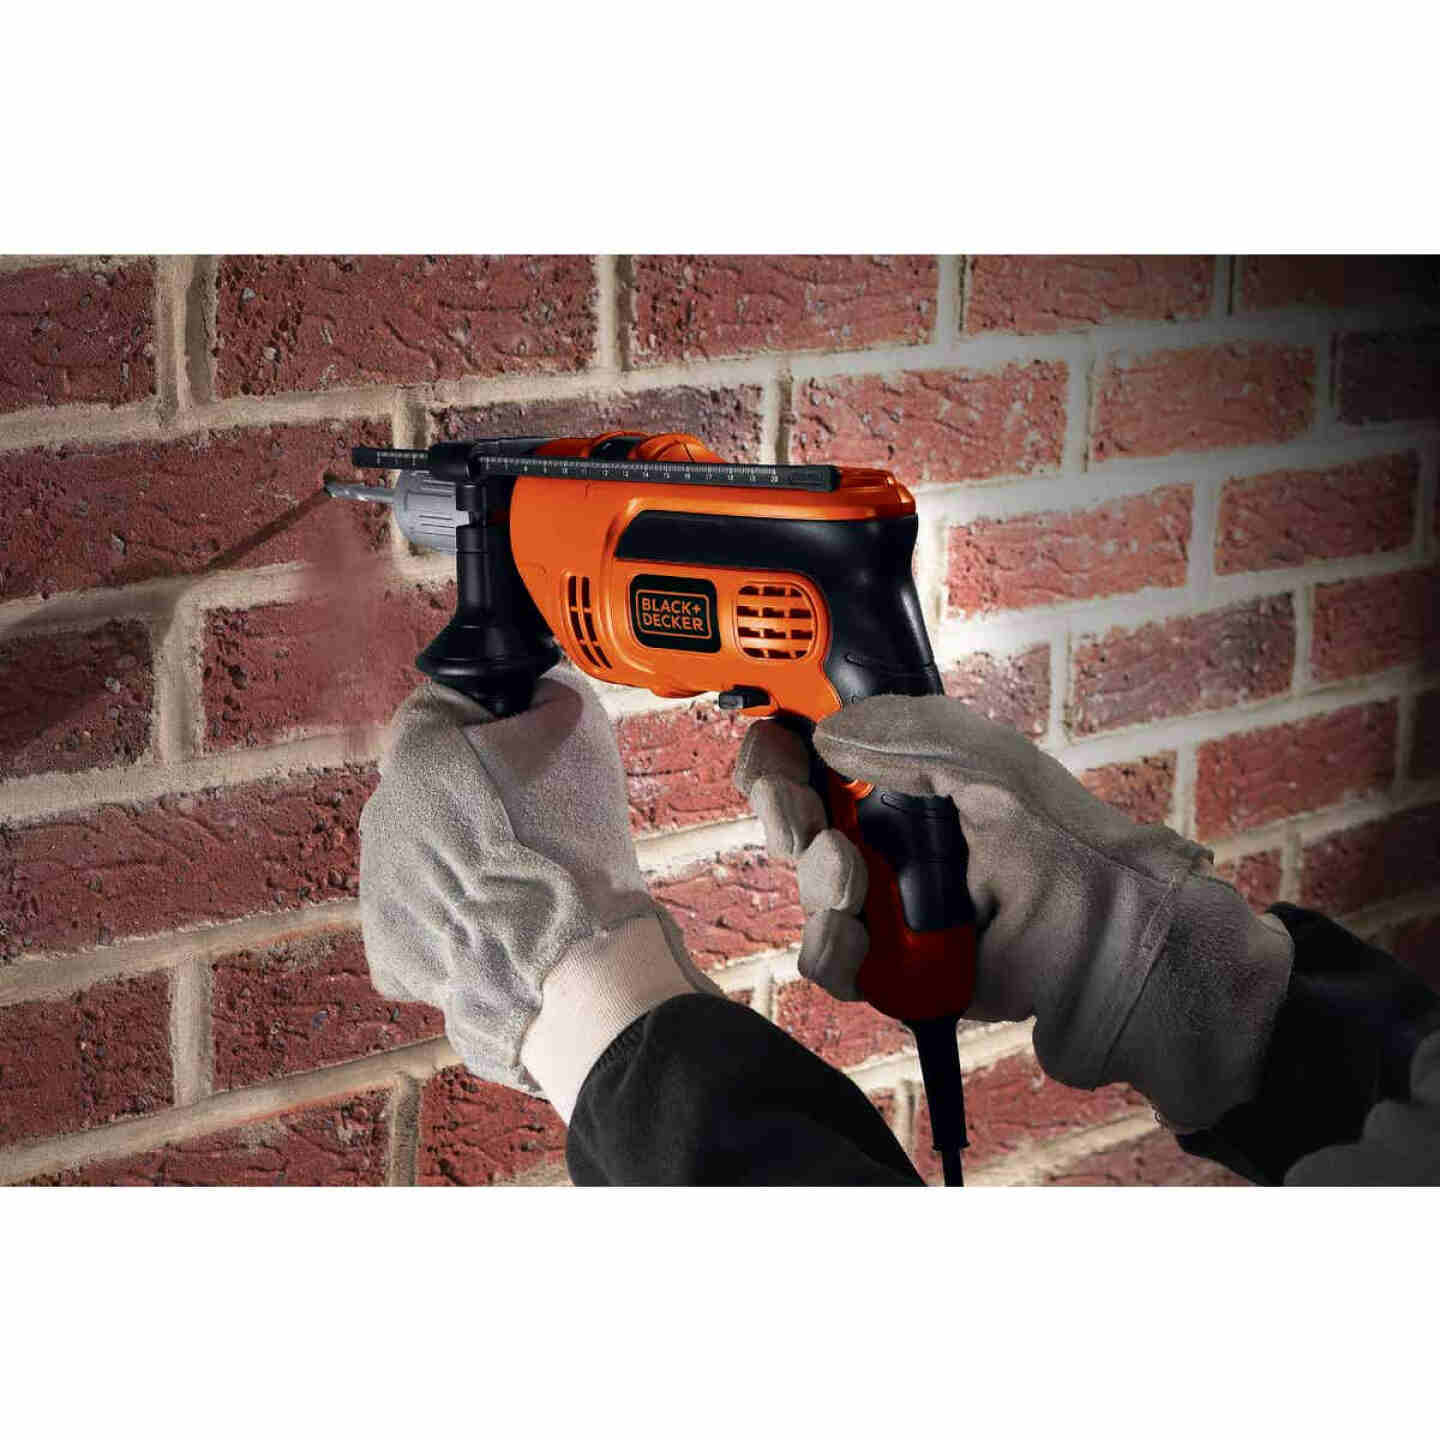 Black and Decker 1/2 In. 6.5-Amp Keyless Electric Hammer Drill Image 3